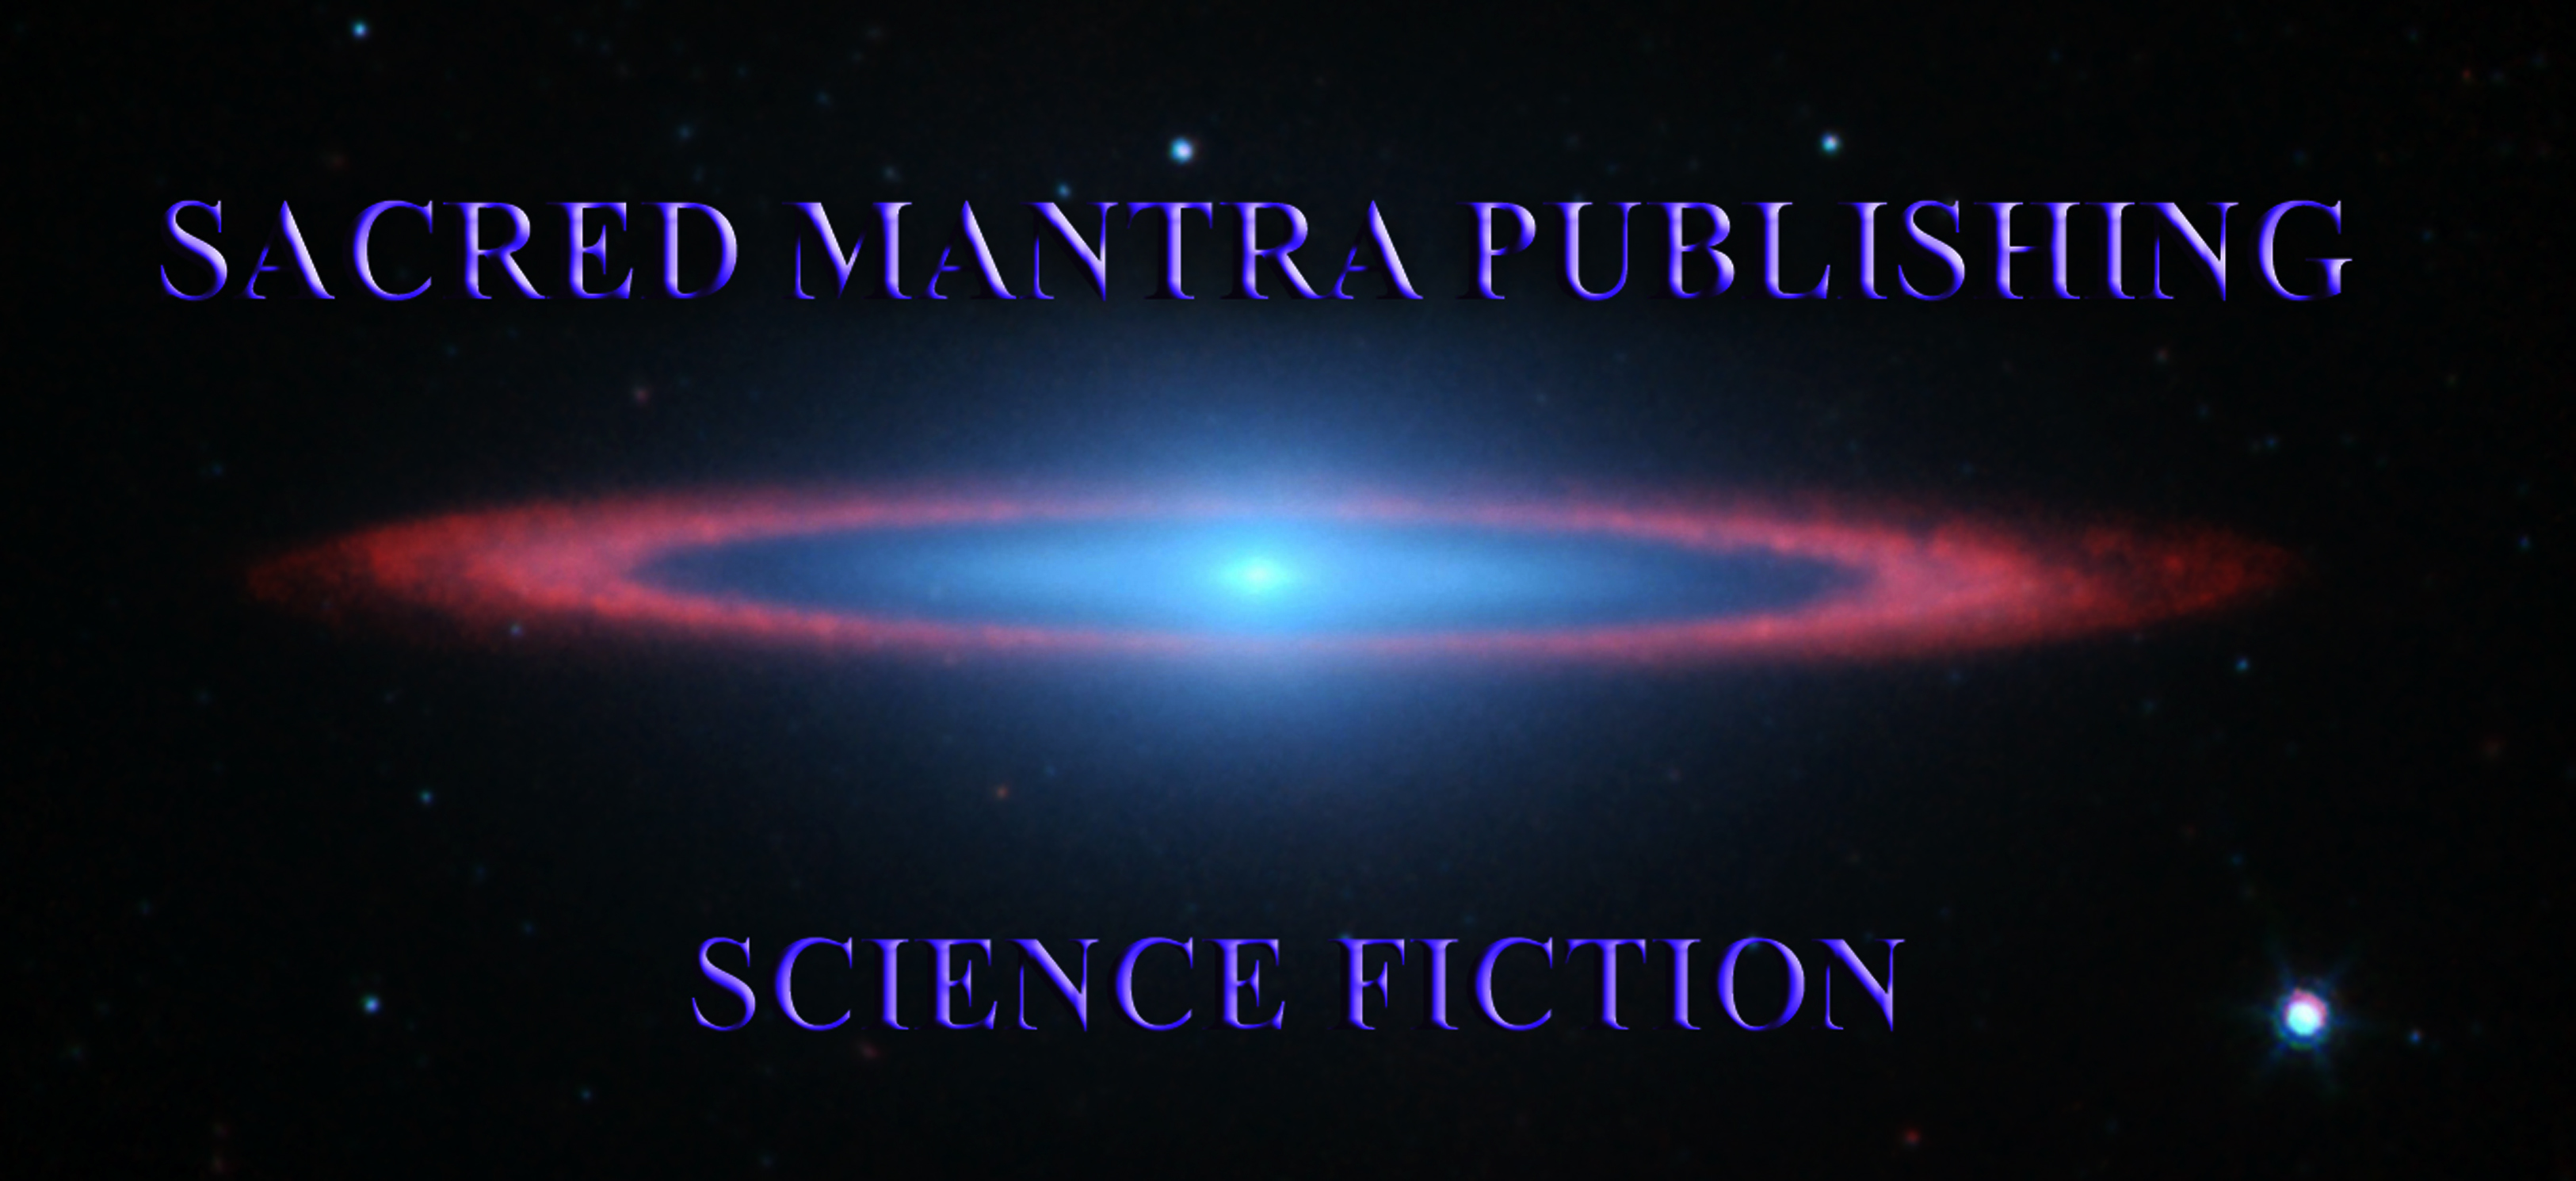 Sacredmantra Publishing